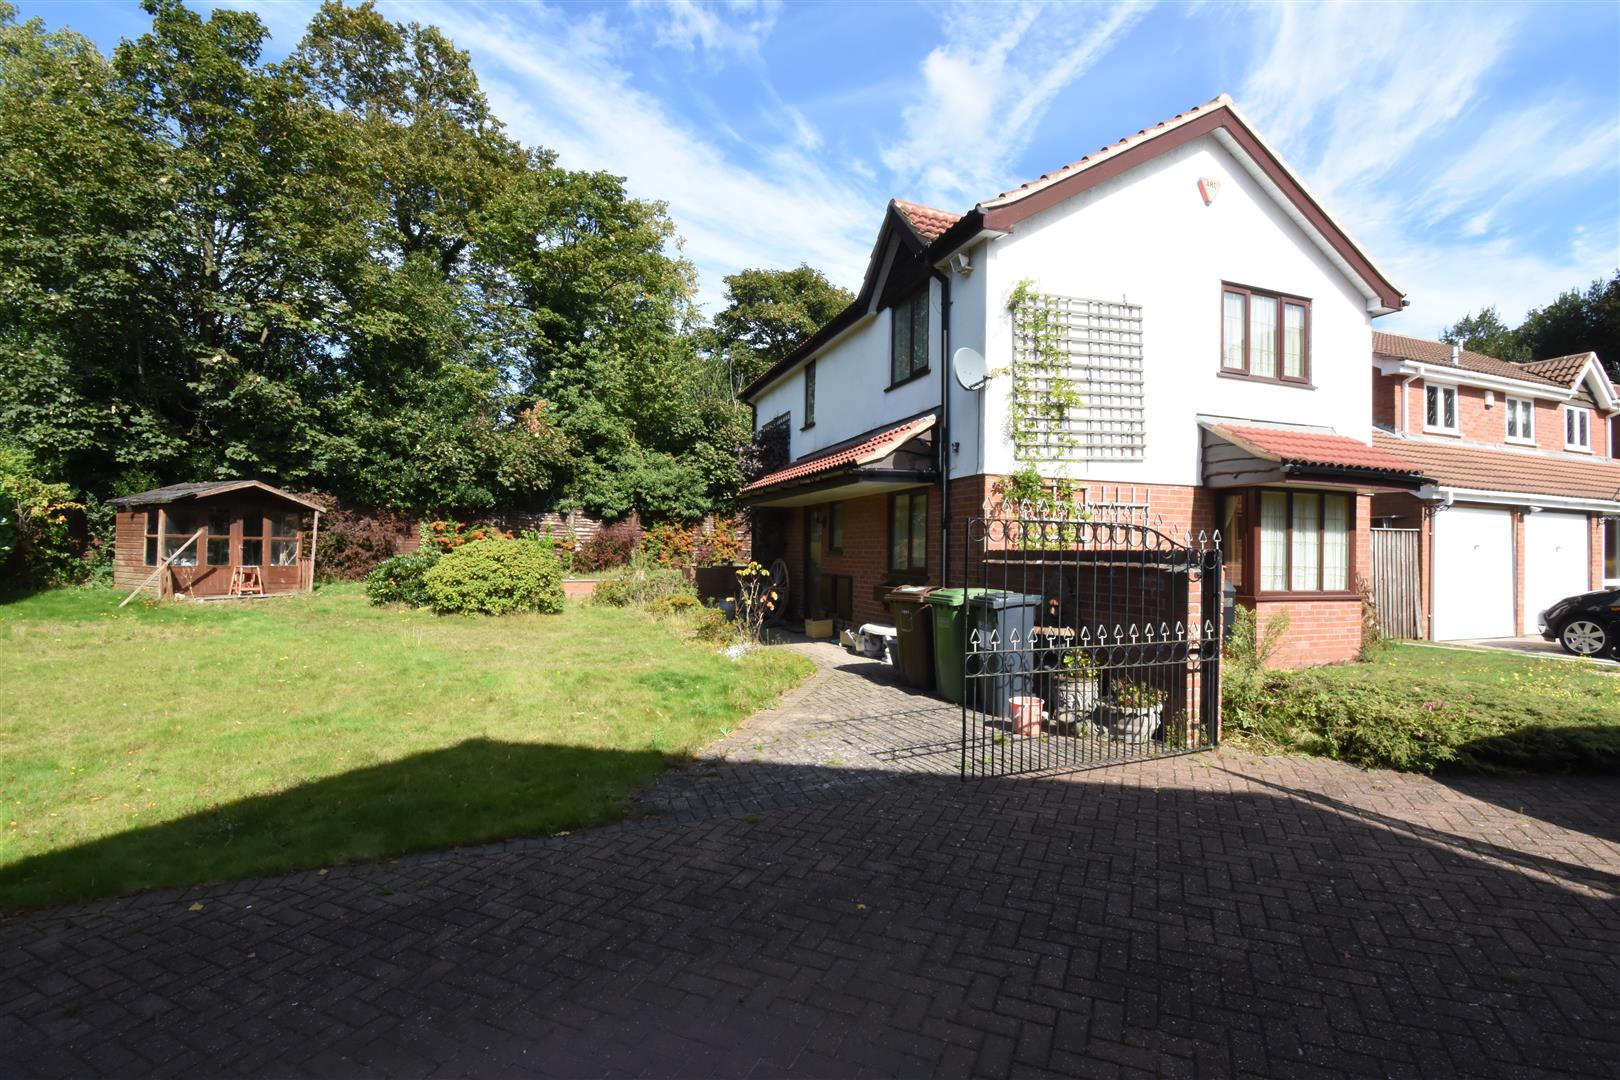 3 bed house for sale in Castle Hills Drive, Castle Bromwich, Birmingham 1